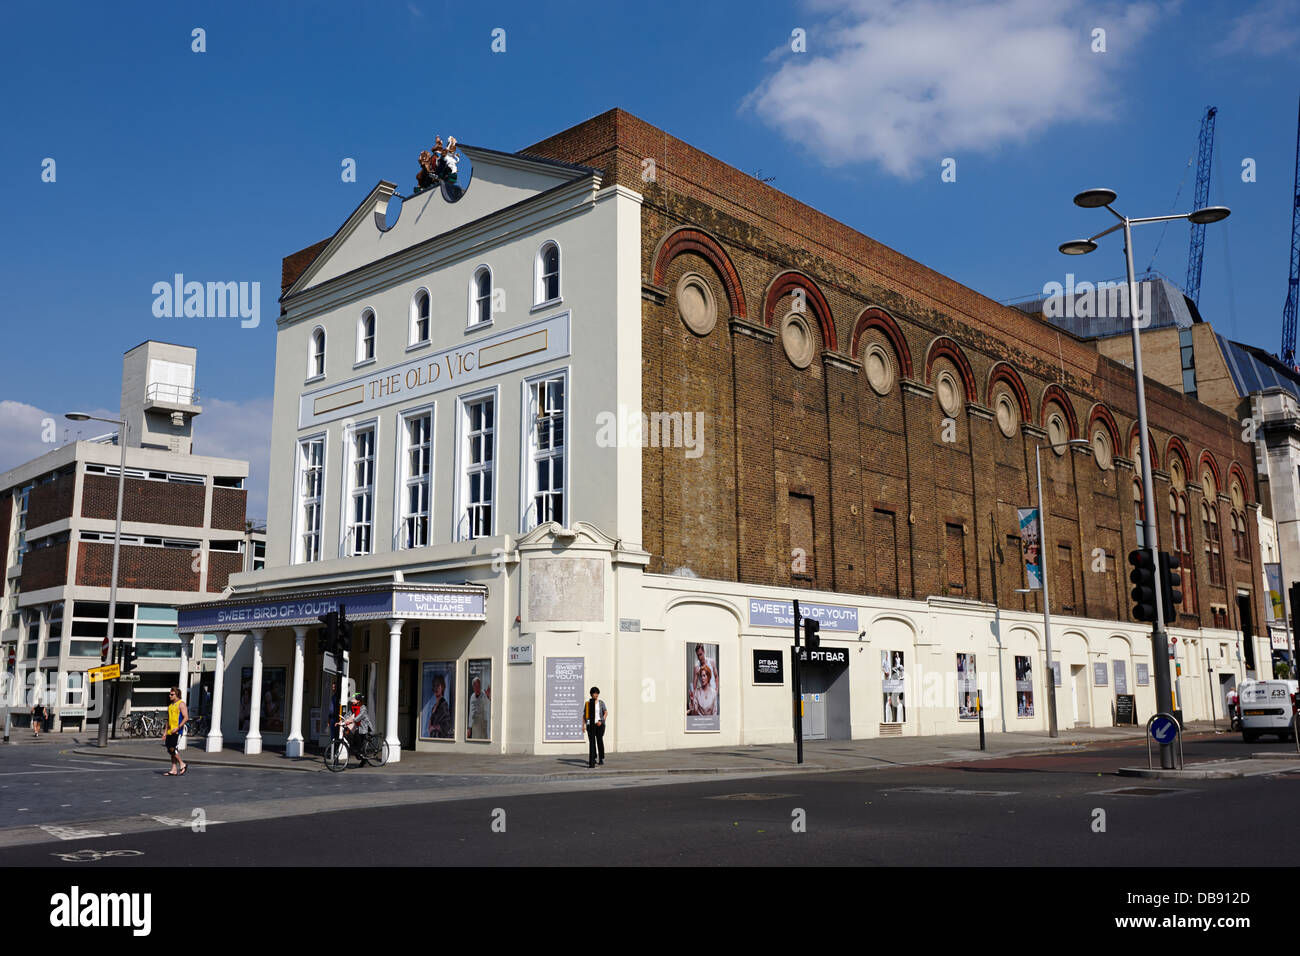 the old vic theatre London England UK - Stock Image